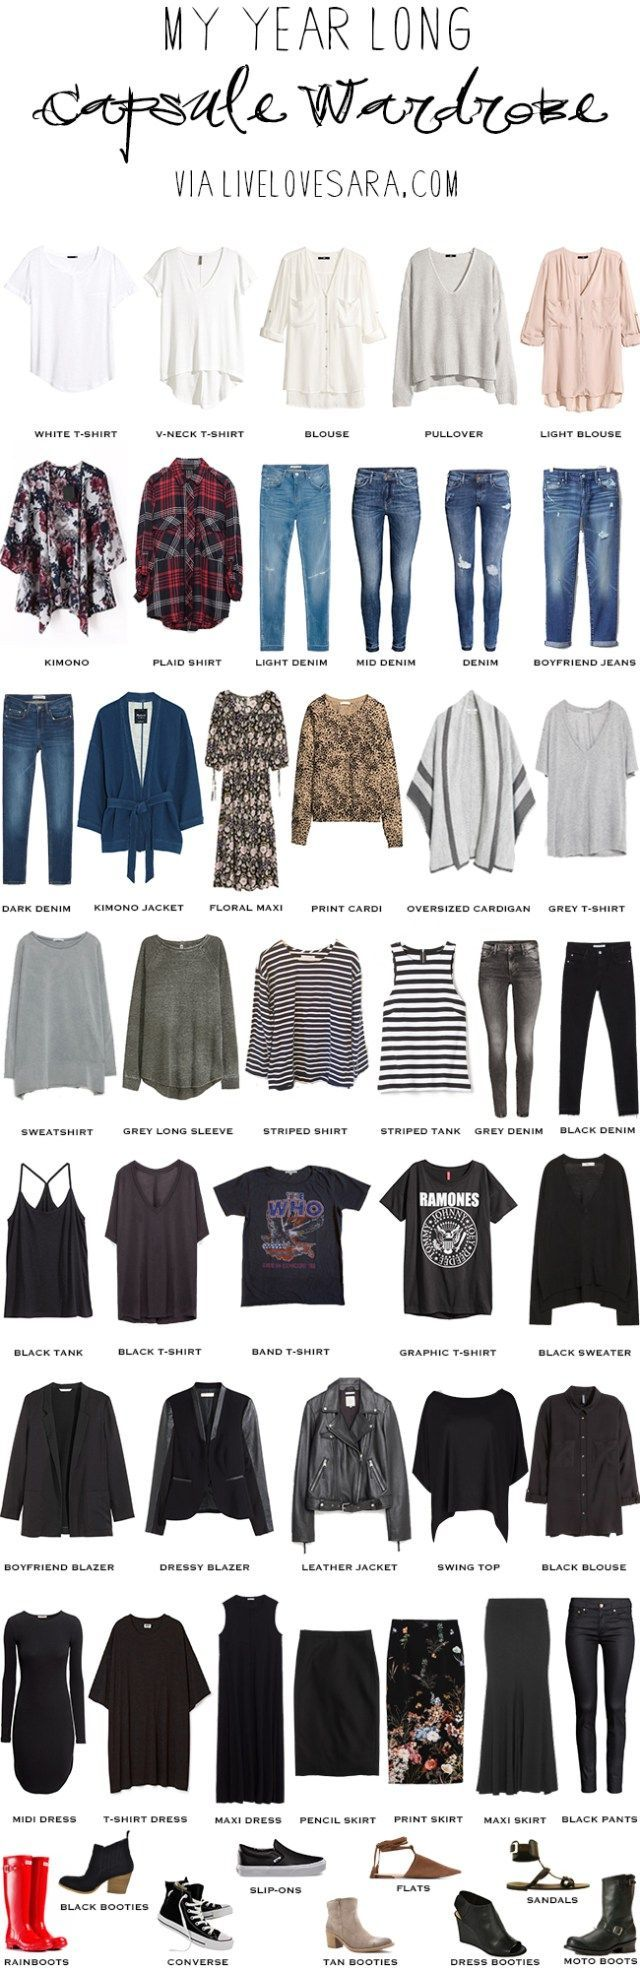 Year Long Capsule Wardrobe Update Building my wardrobe We are want to say thanks